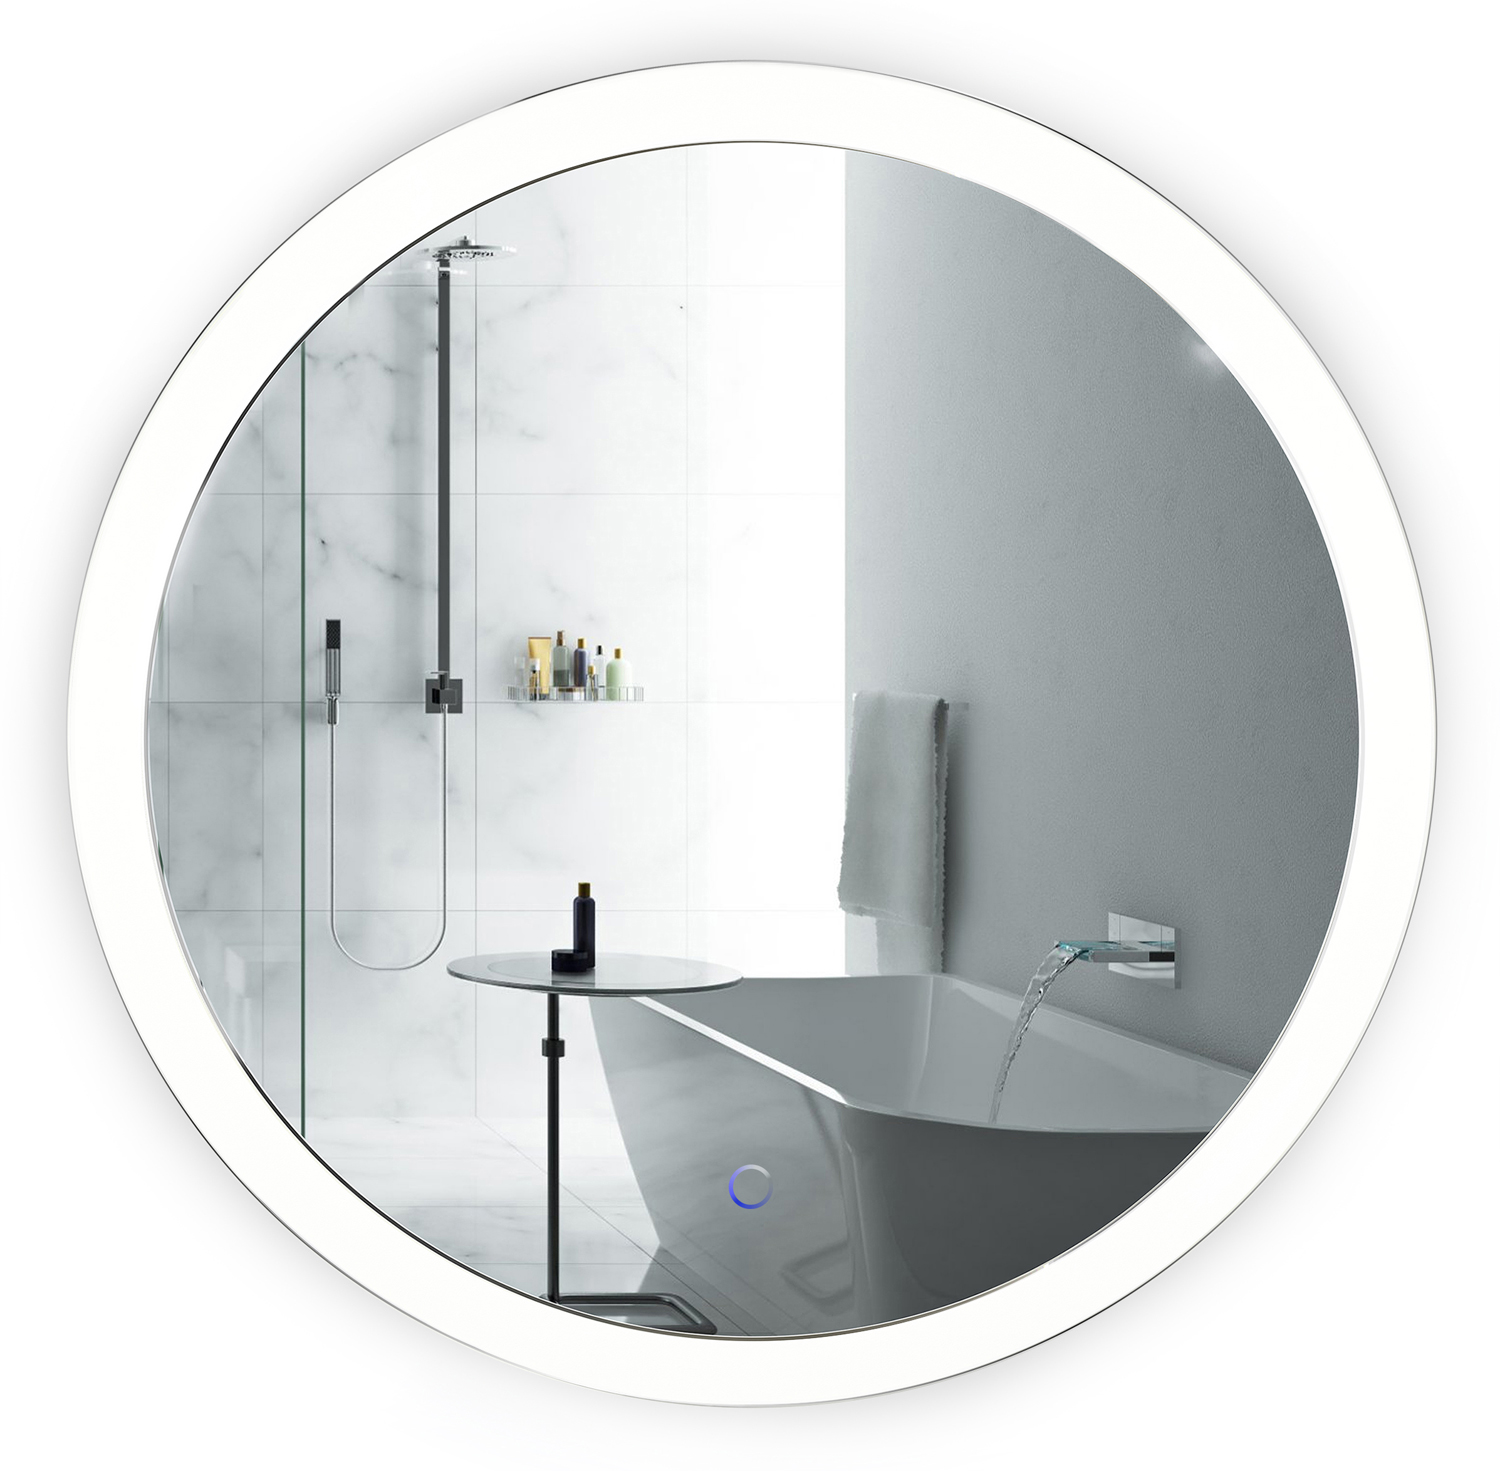 Sol Round 27″ x 27″ LED Bathroom Mirror w/ Dimmer & Defogger | Round Back-lit Vanity Mirror